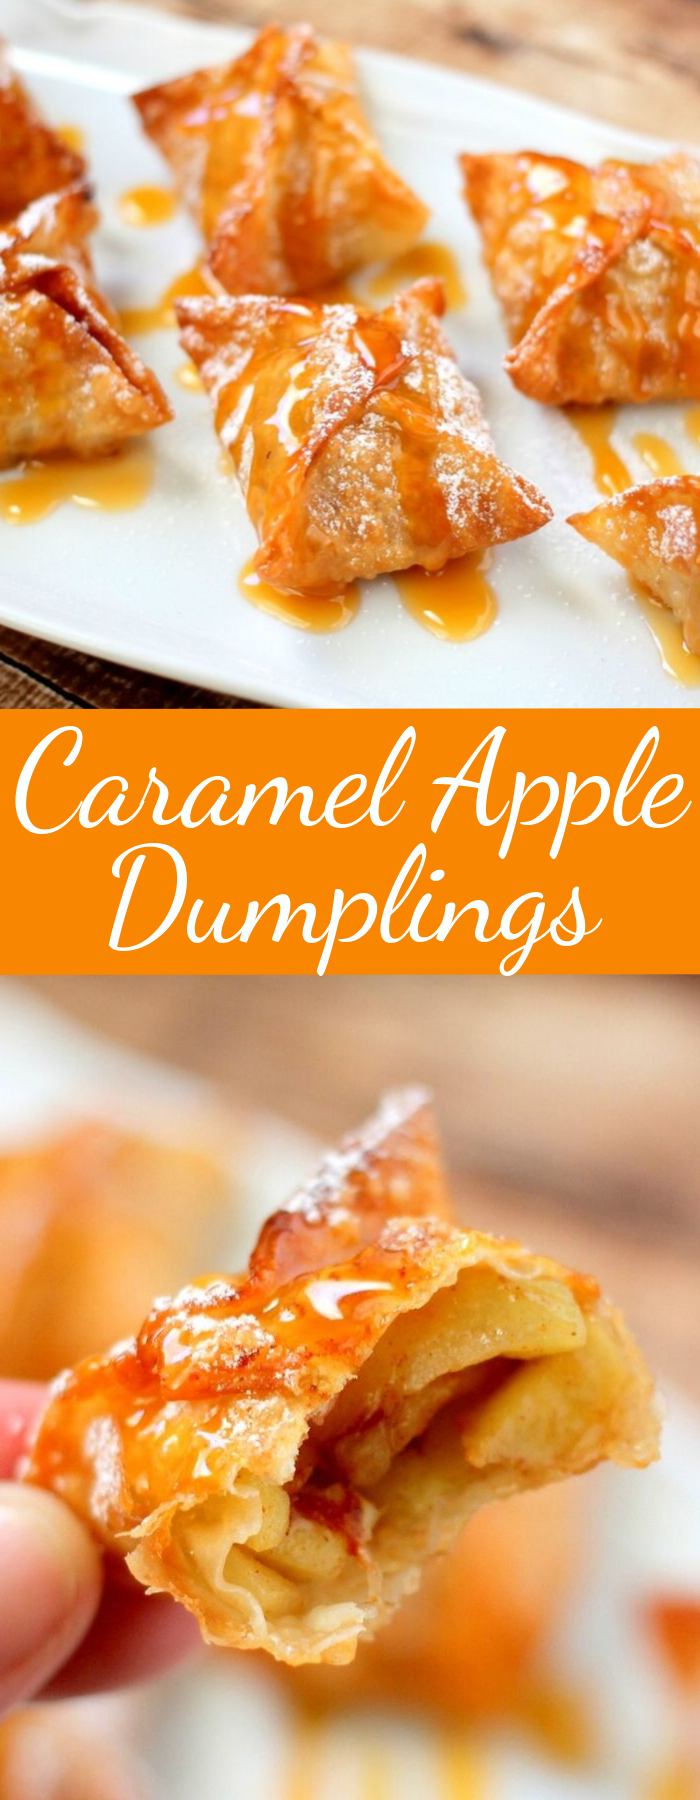 With a crispy shell on the outside and warm sweet caramel apples on the inside, these Caramel Apple Dumplings make the perfect fall dessert!